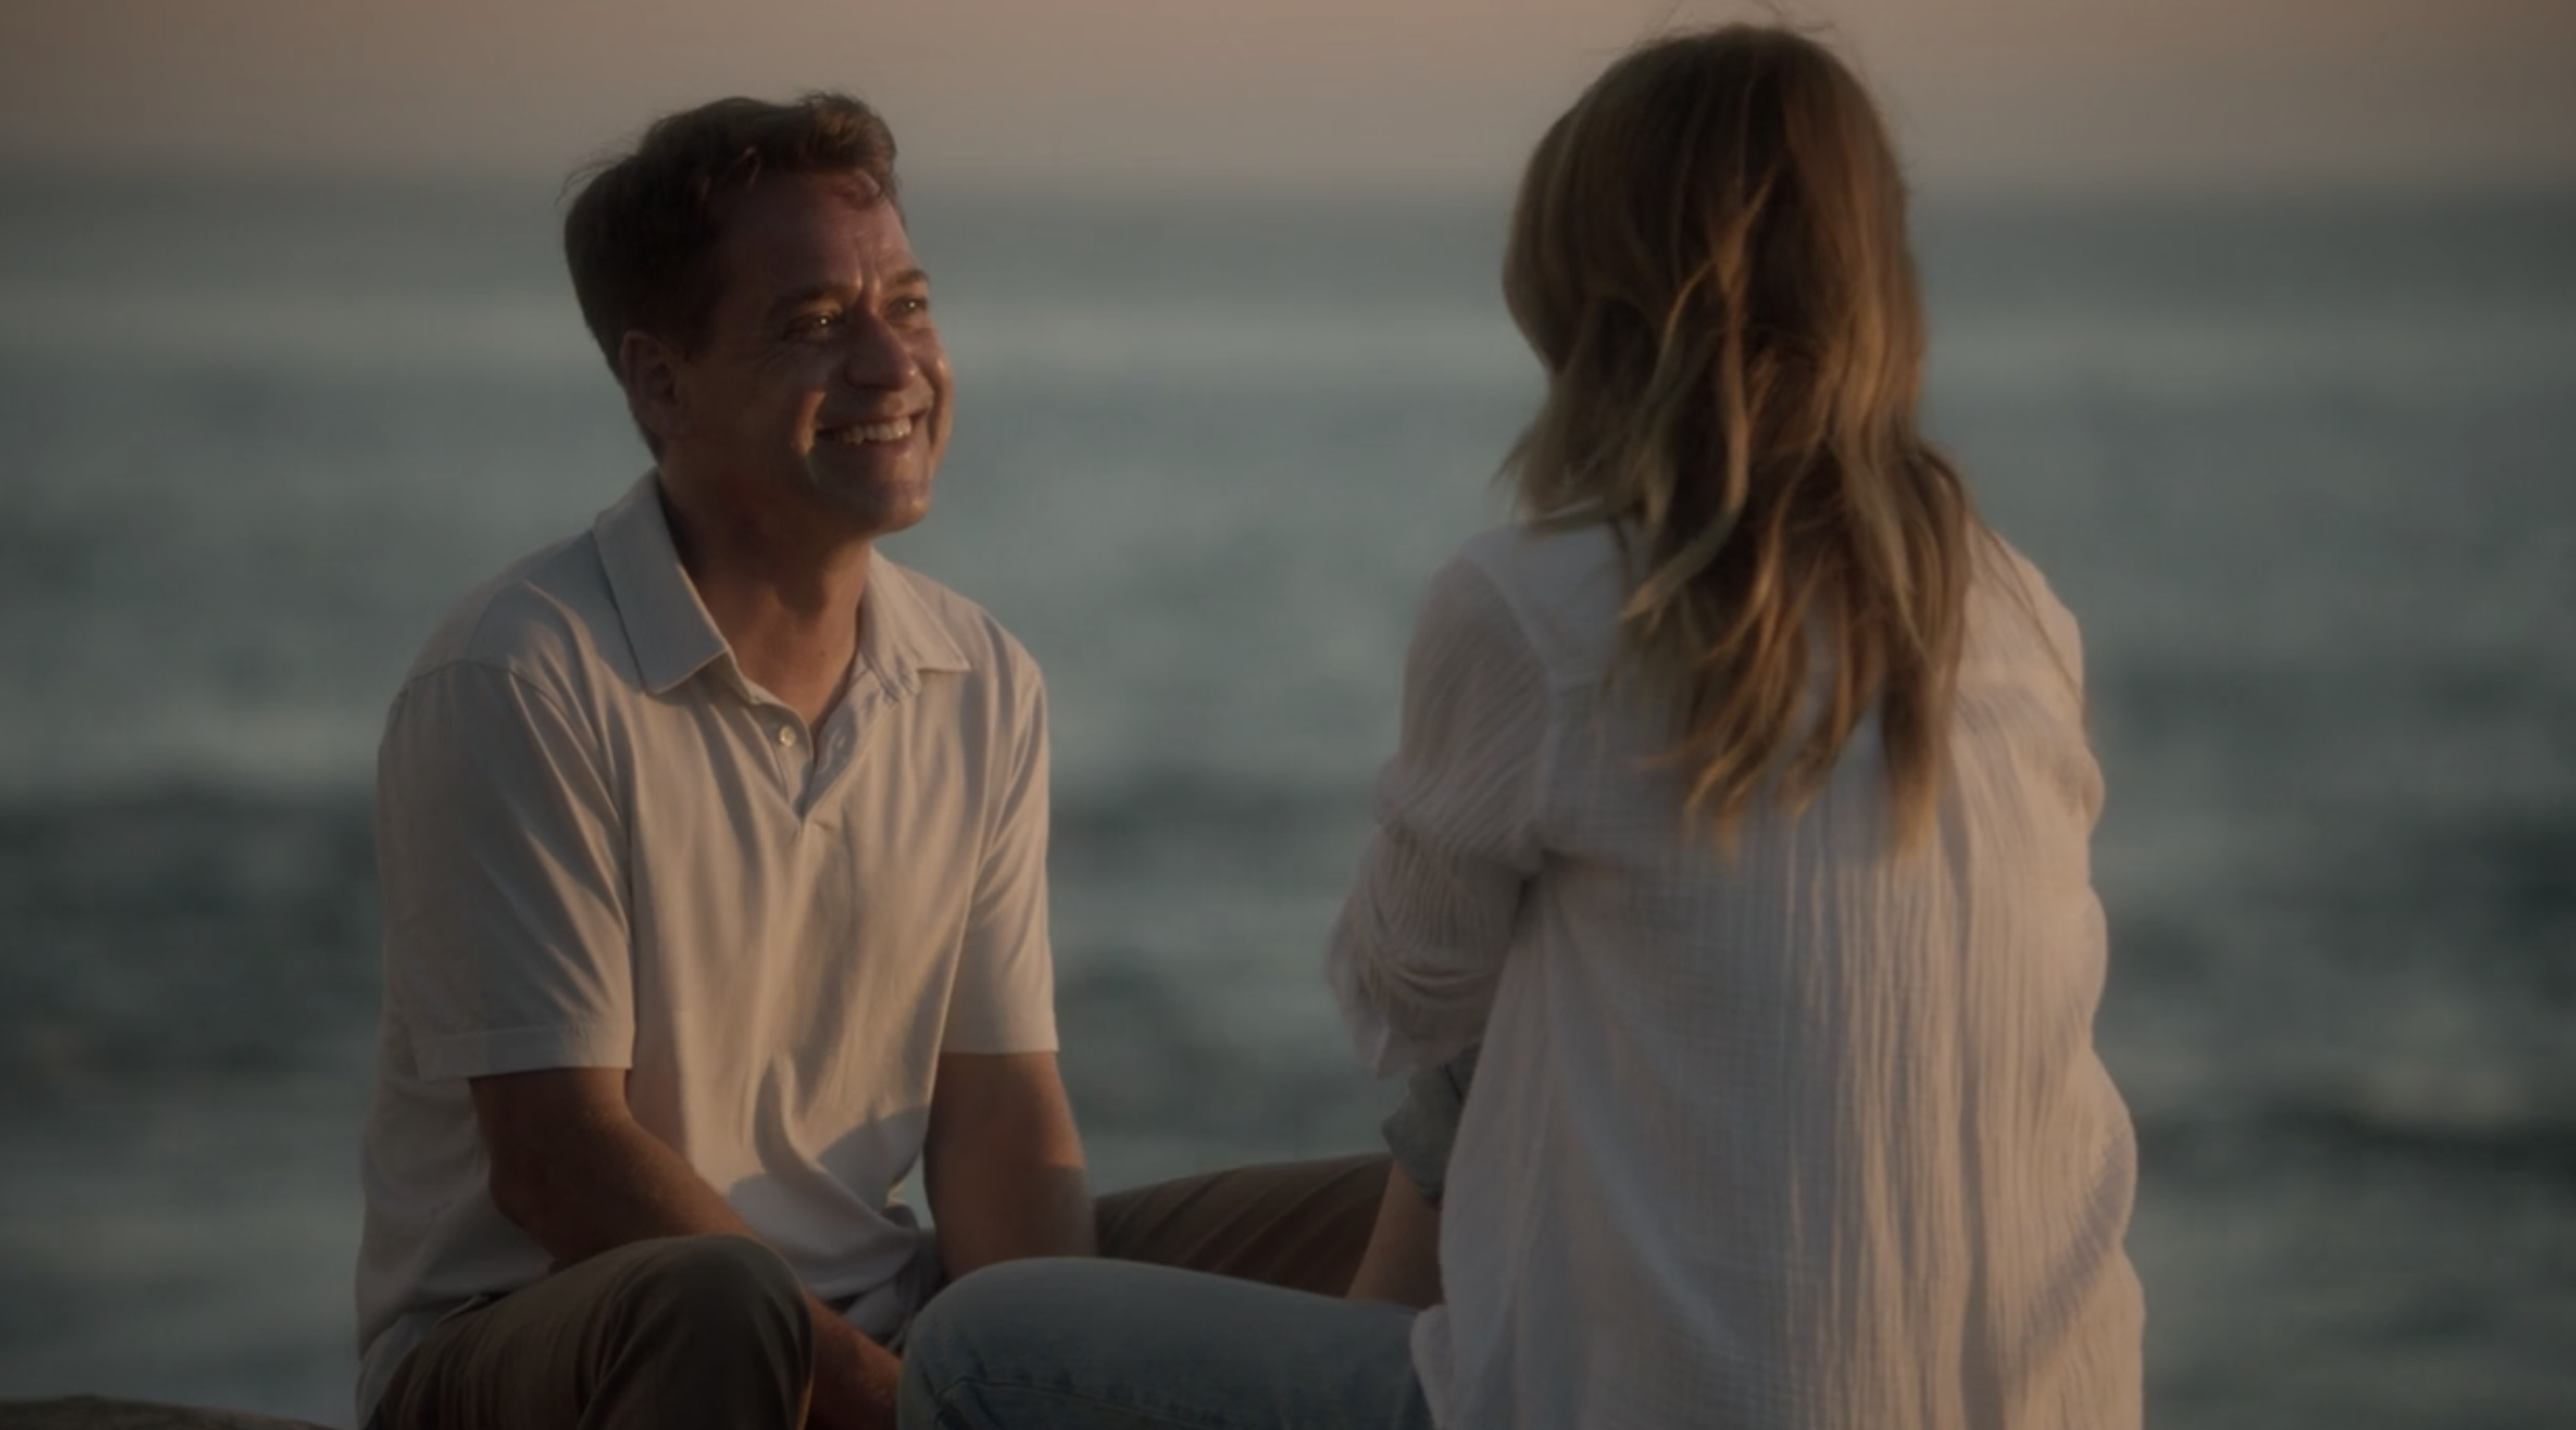 George smiling while talking to Meredith on the beach